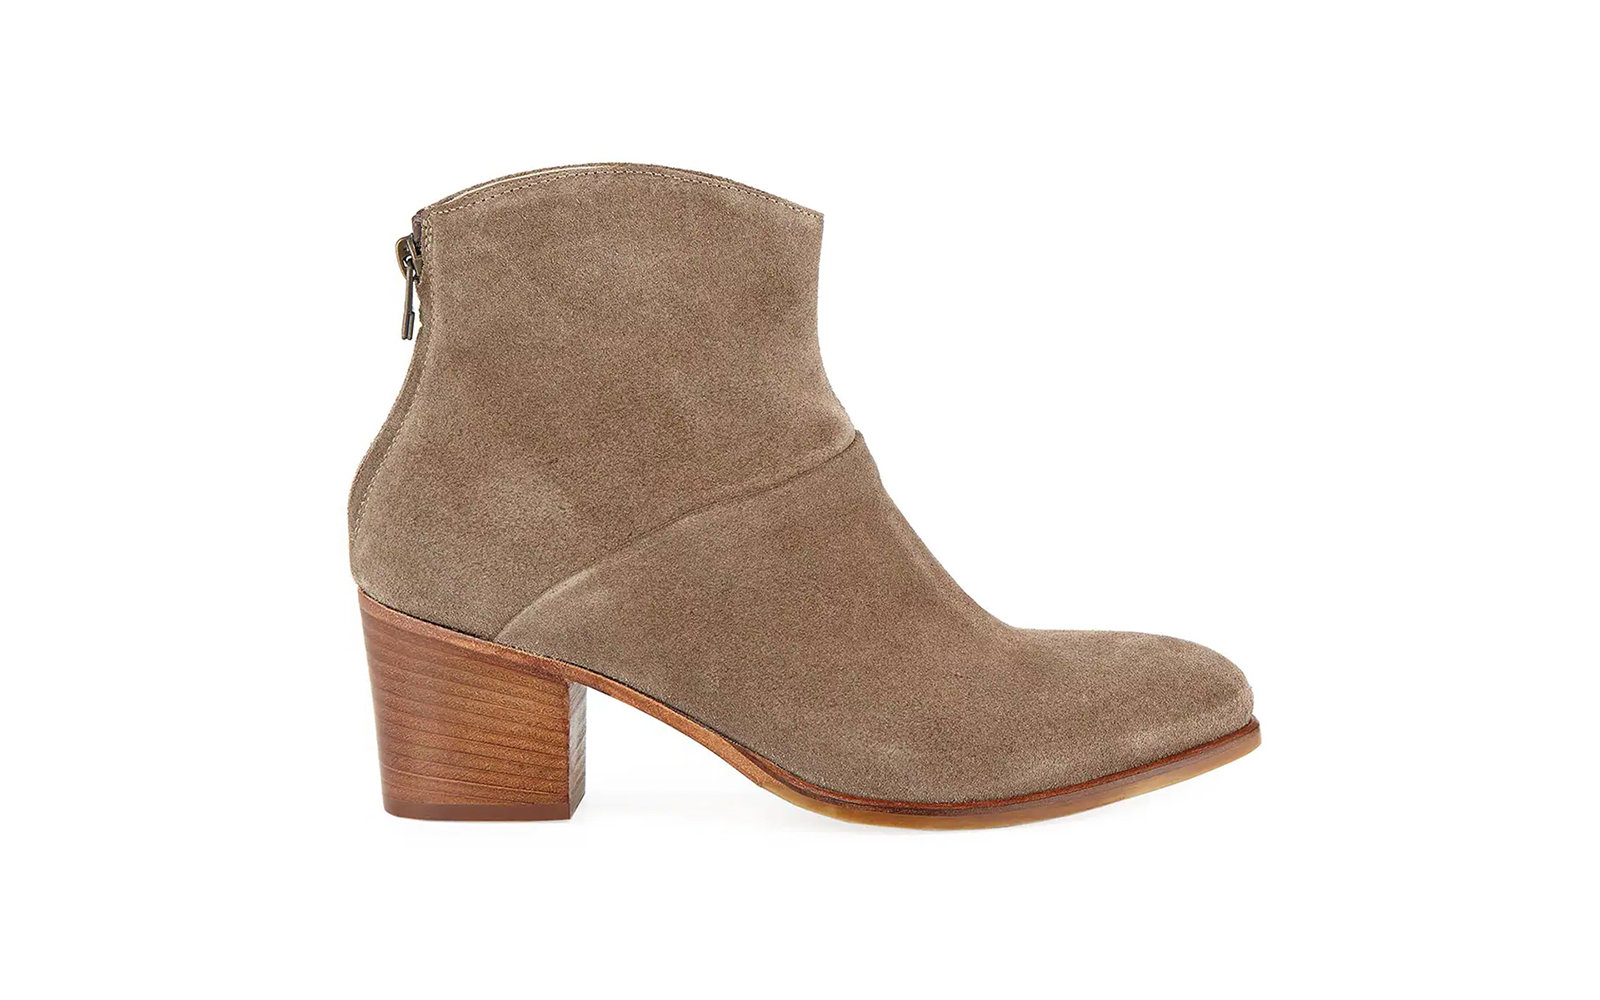 dbc423eaf2a0 Best for  Suede Booties. Best Winter Travel Boots  ...